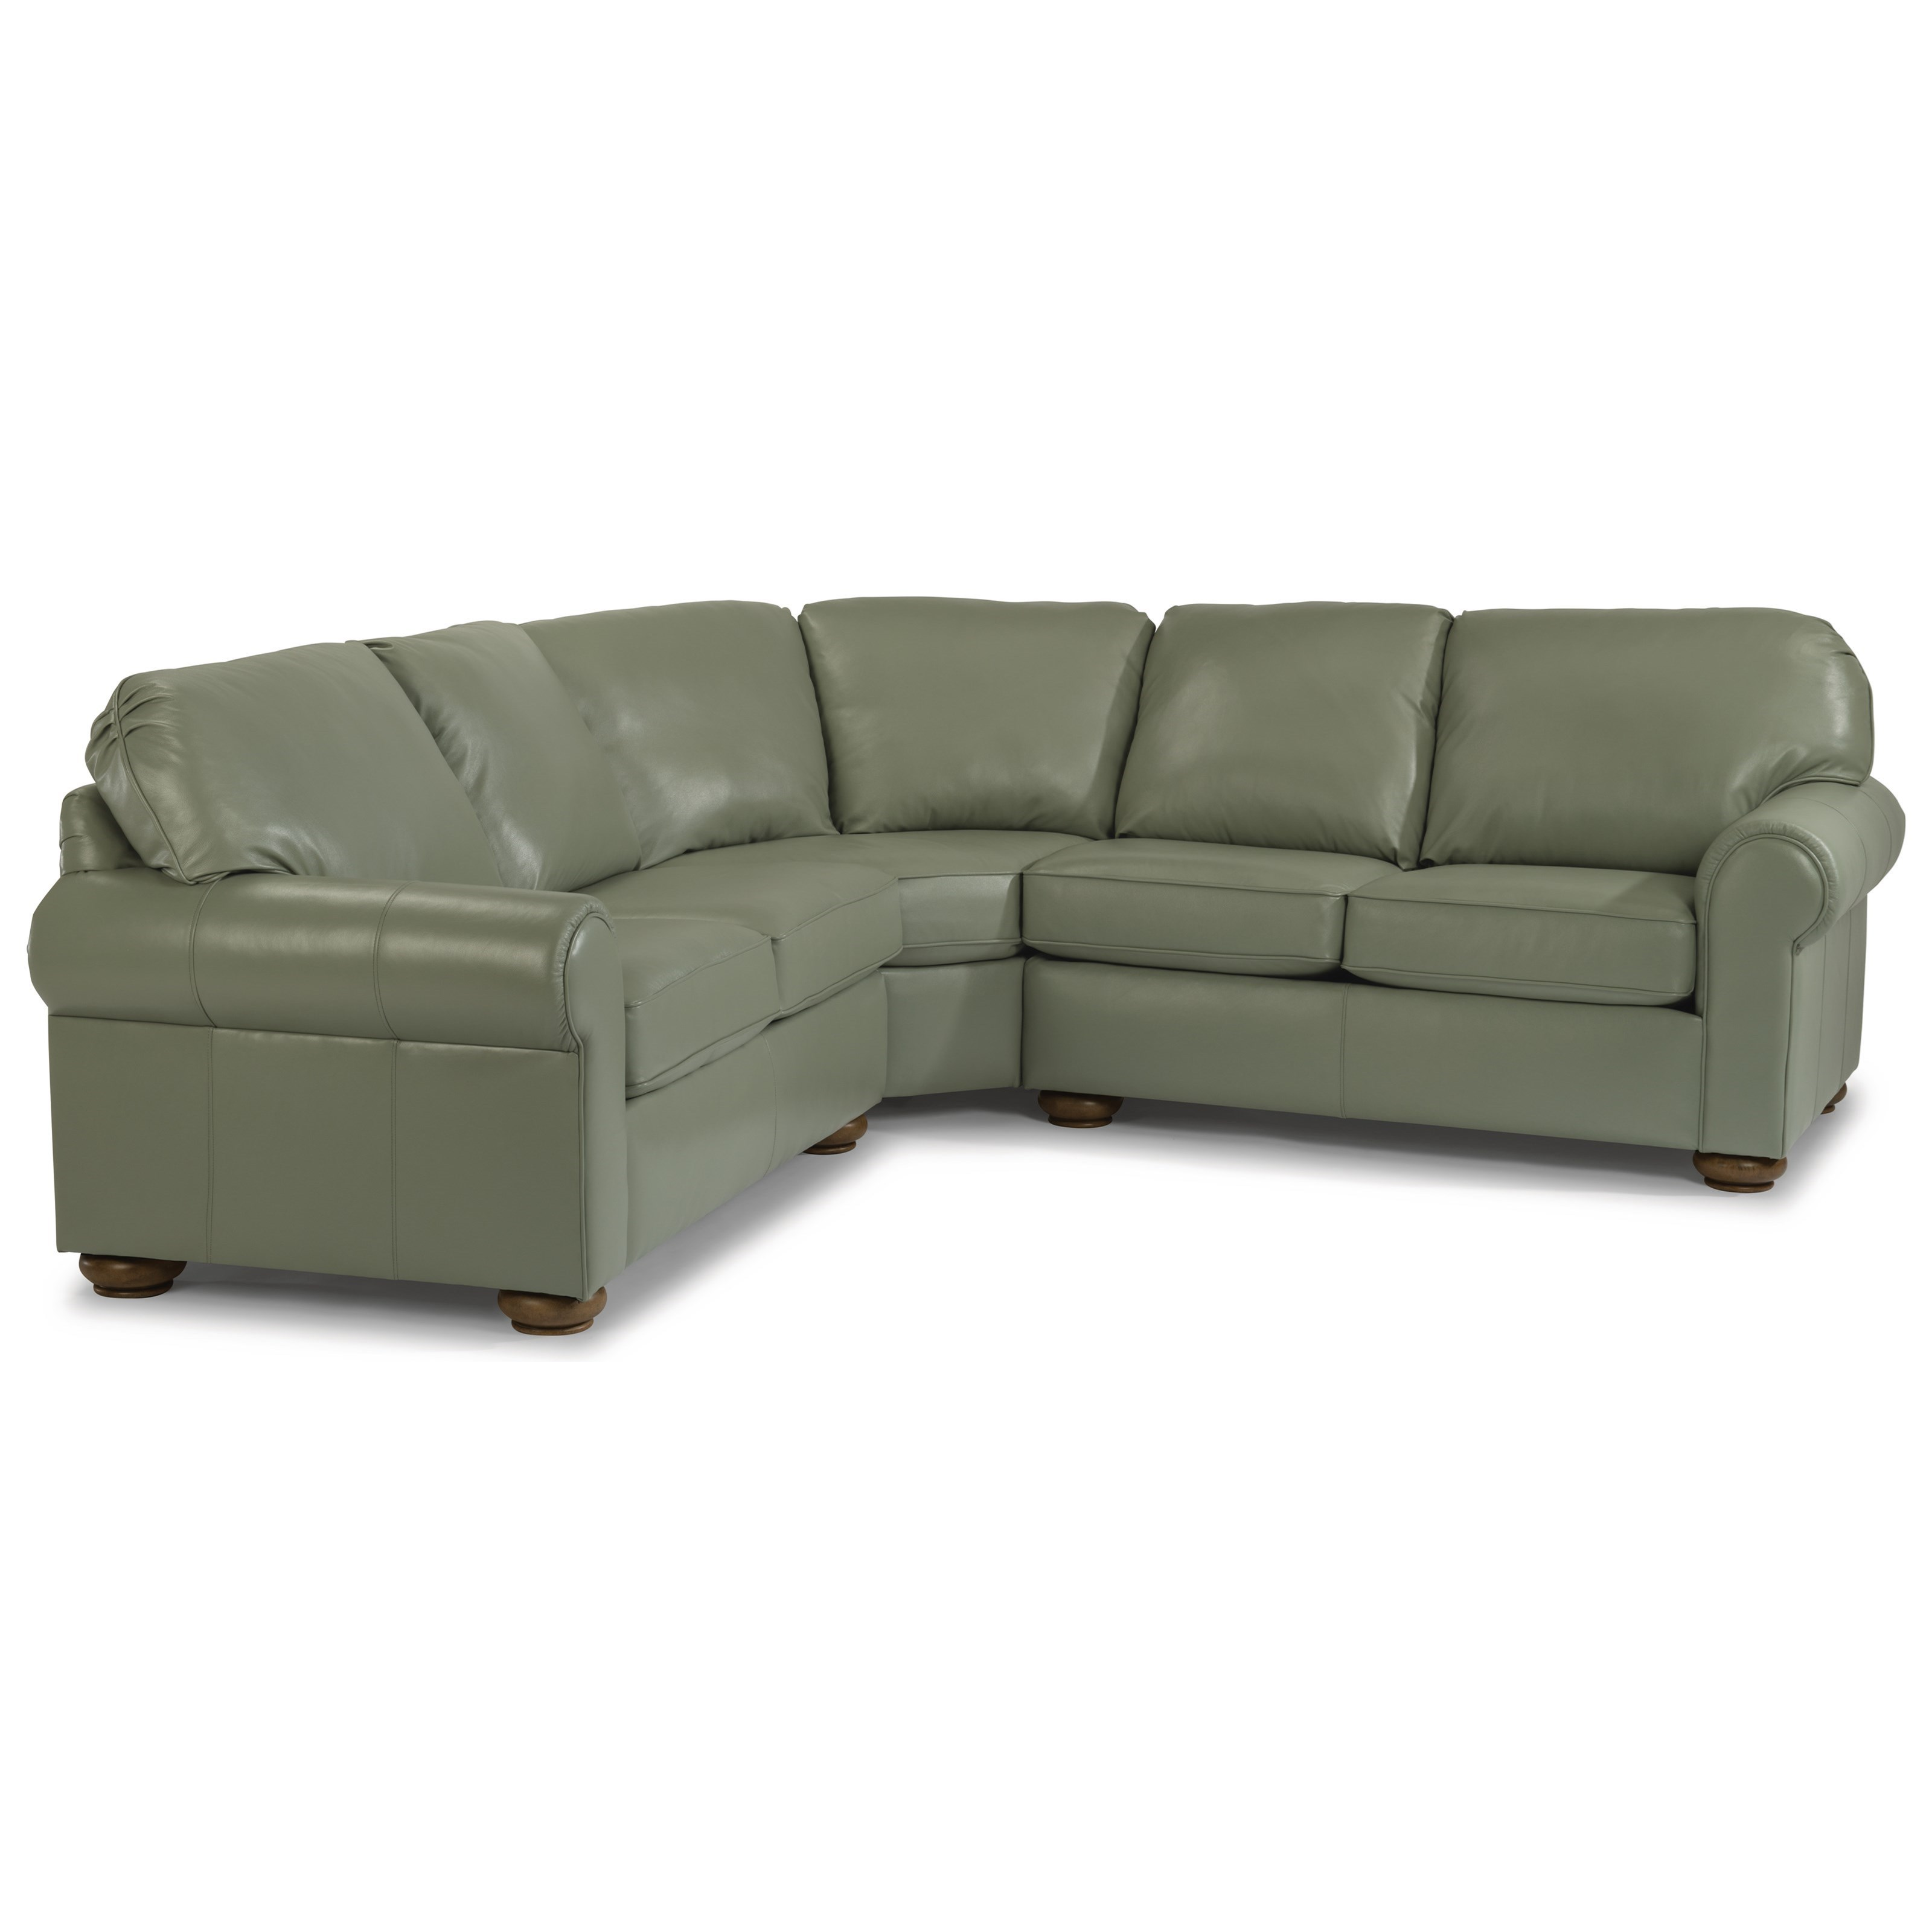 flexsteel sofa bed mattress leather outlet uk reviews preston traditional 4 seat sectional